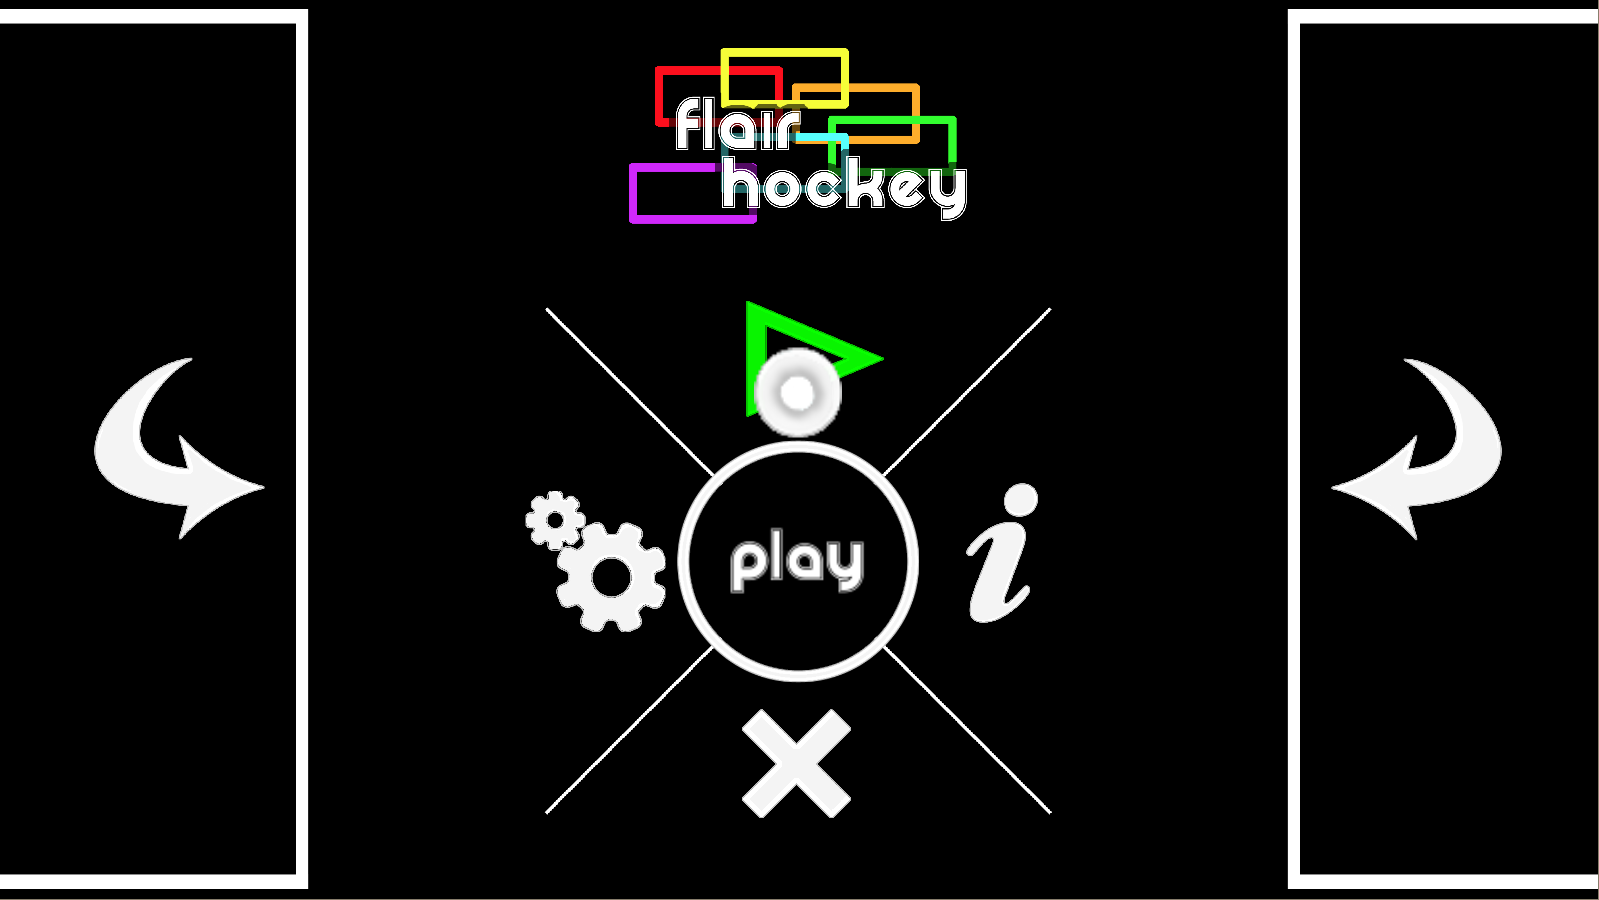 FlairHockey5